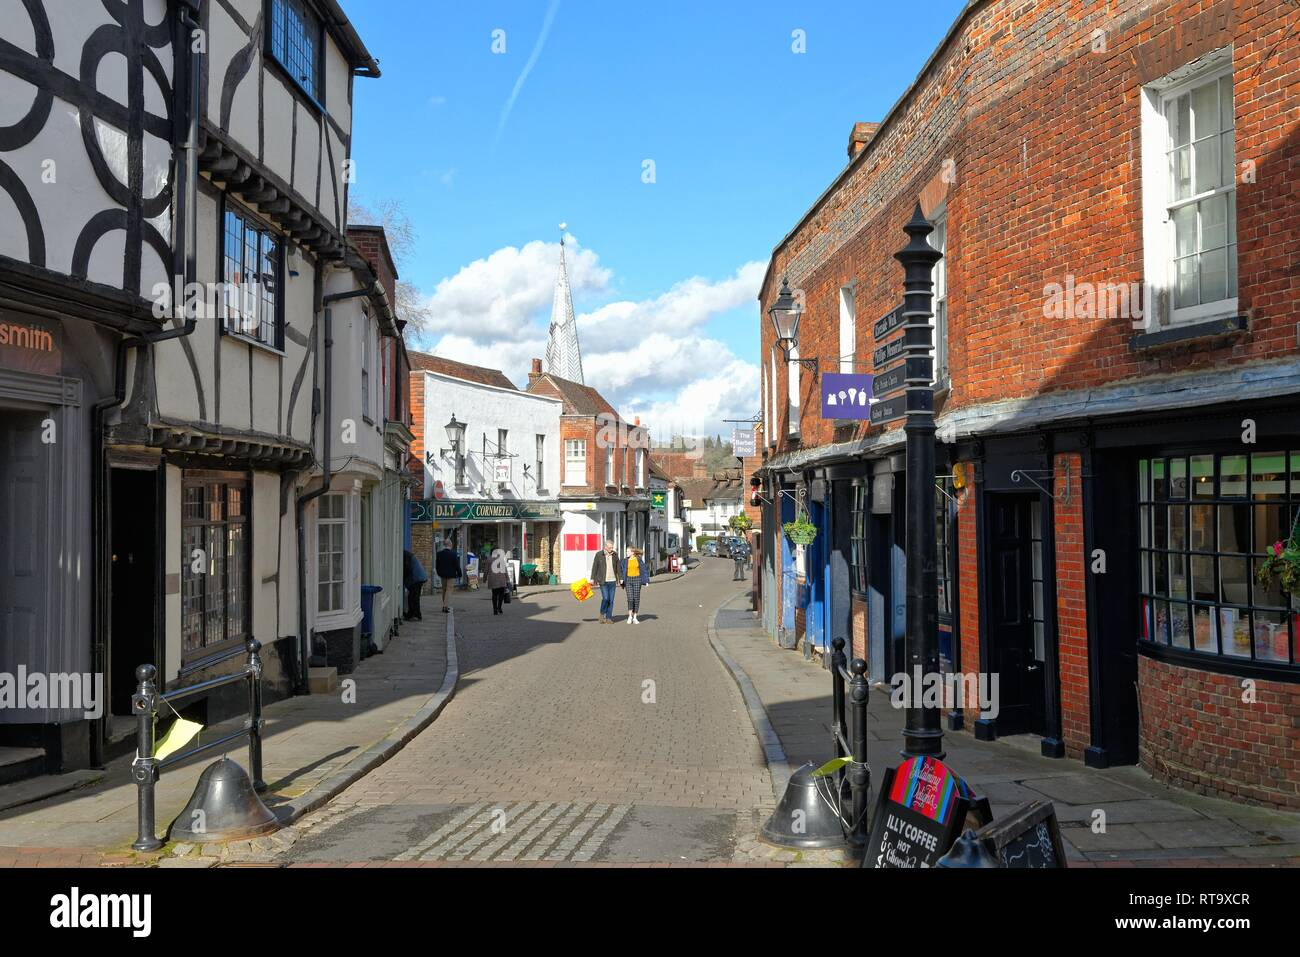 Centre of the market town of Godalming Surrey England UK - Stock Image